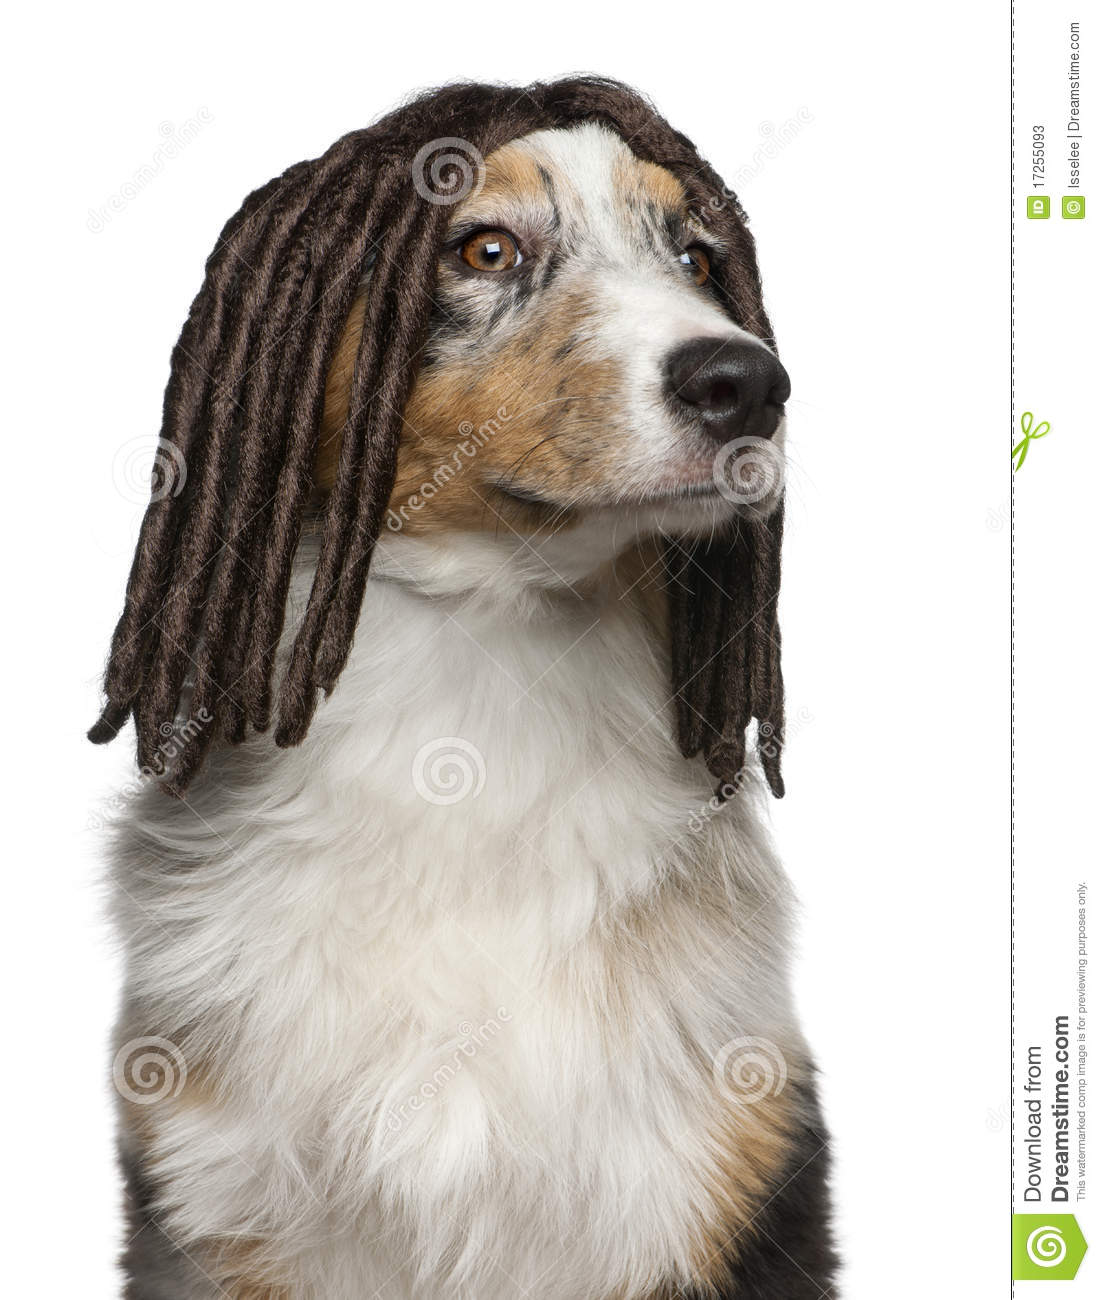 Dogs with Wigs